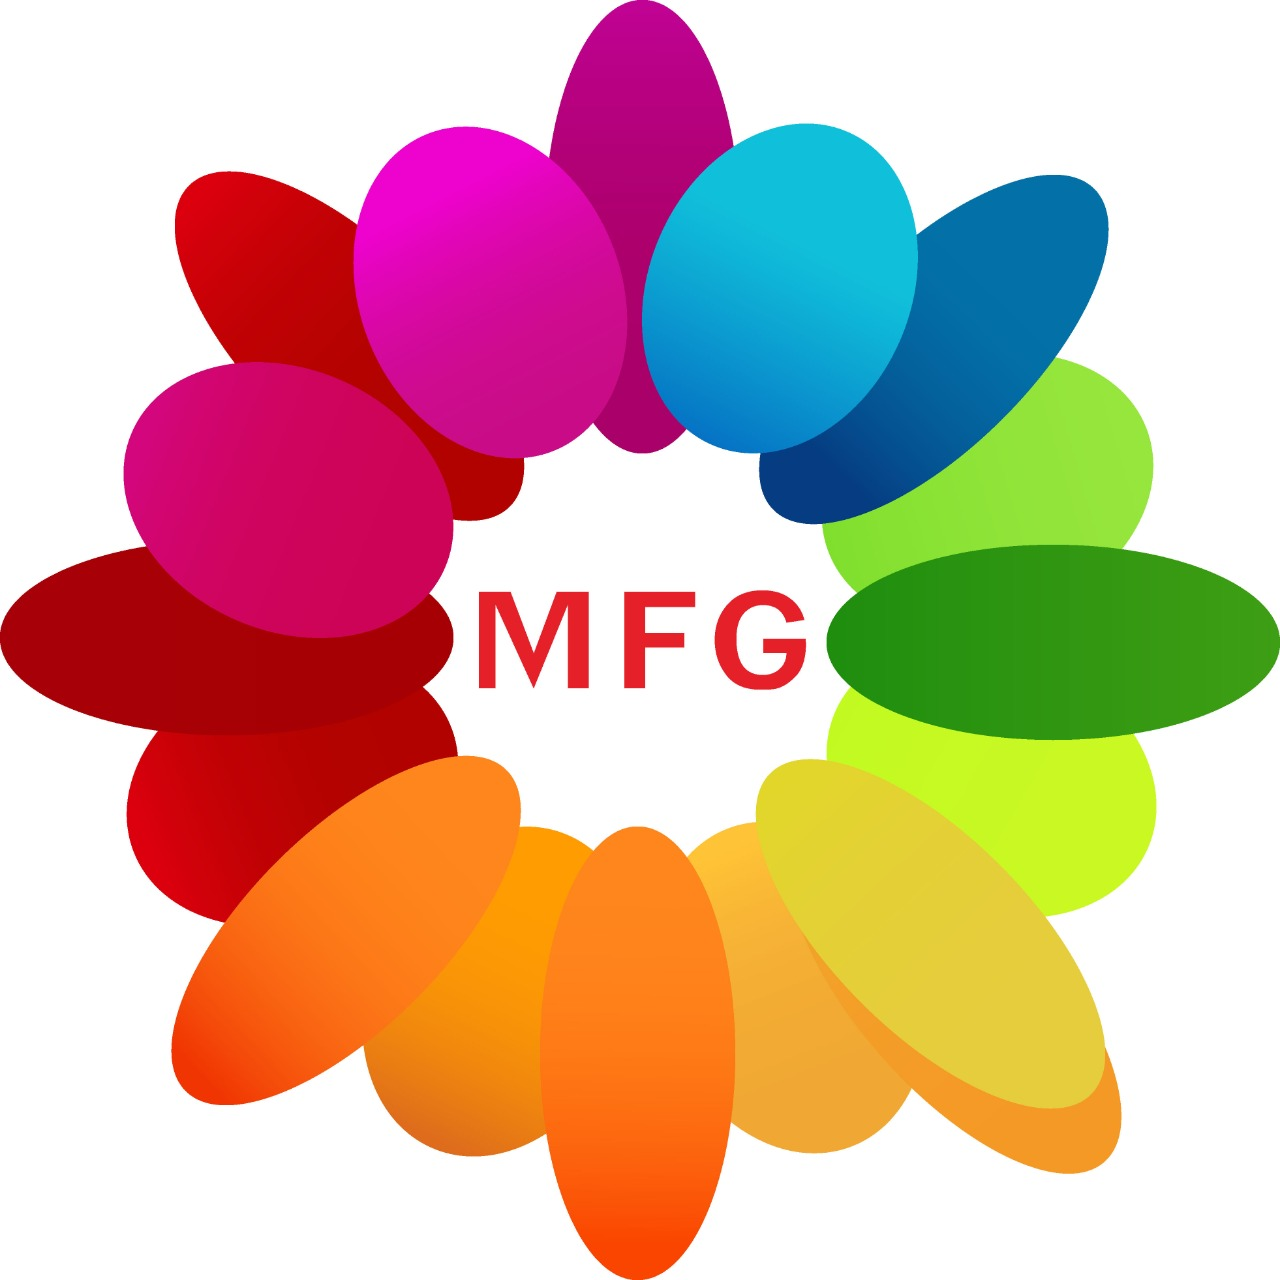 1 kg chocolate heart shape premium quality cake with exotic fruits topping with basket of assorted chocolates with 1 feet height teddybear carrying box of 24pcs rocher ferrero chocolates